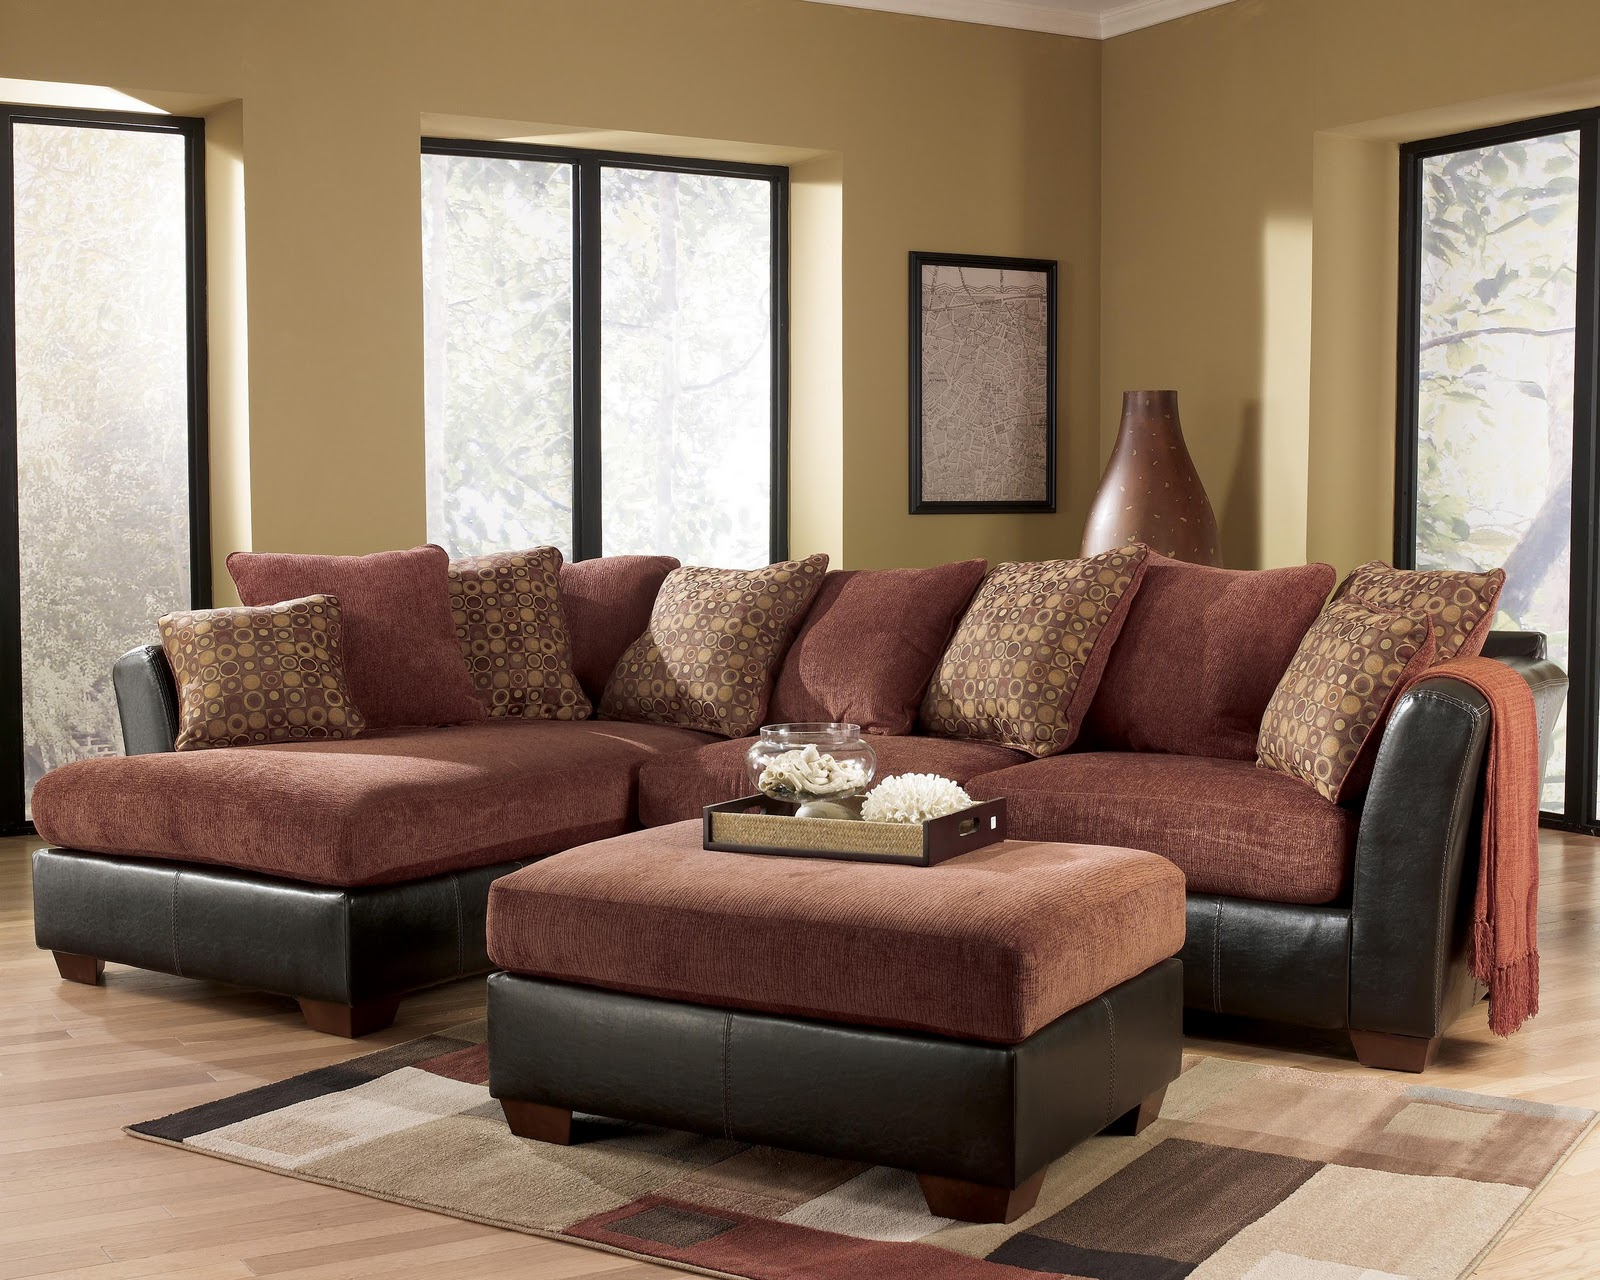 Ashley Furniture Larson 31400 Cinnamon Sofa Sectional